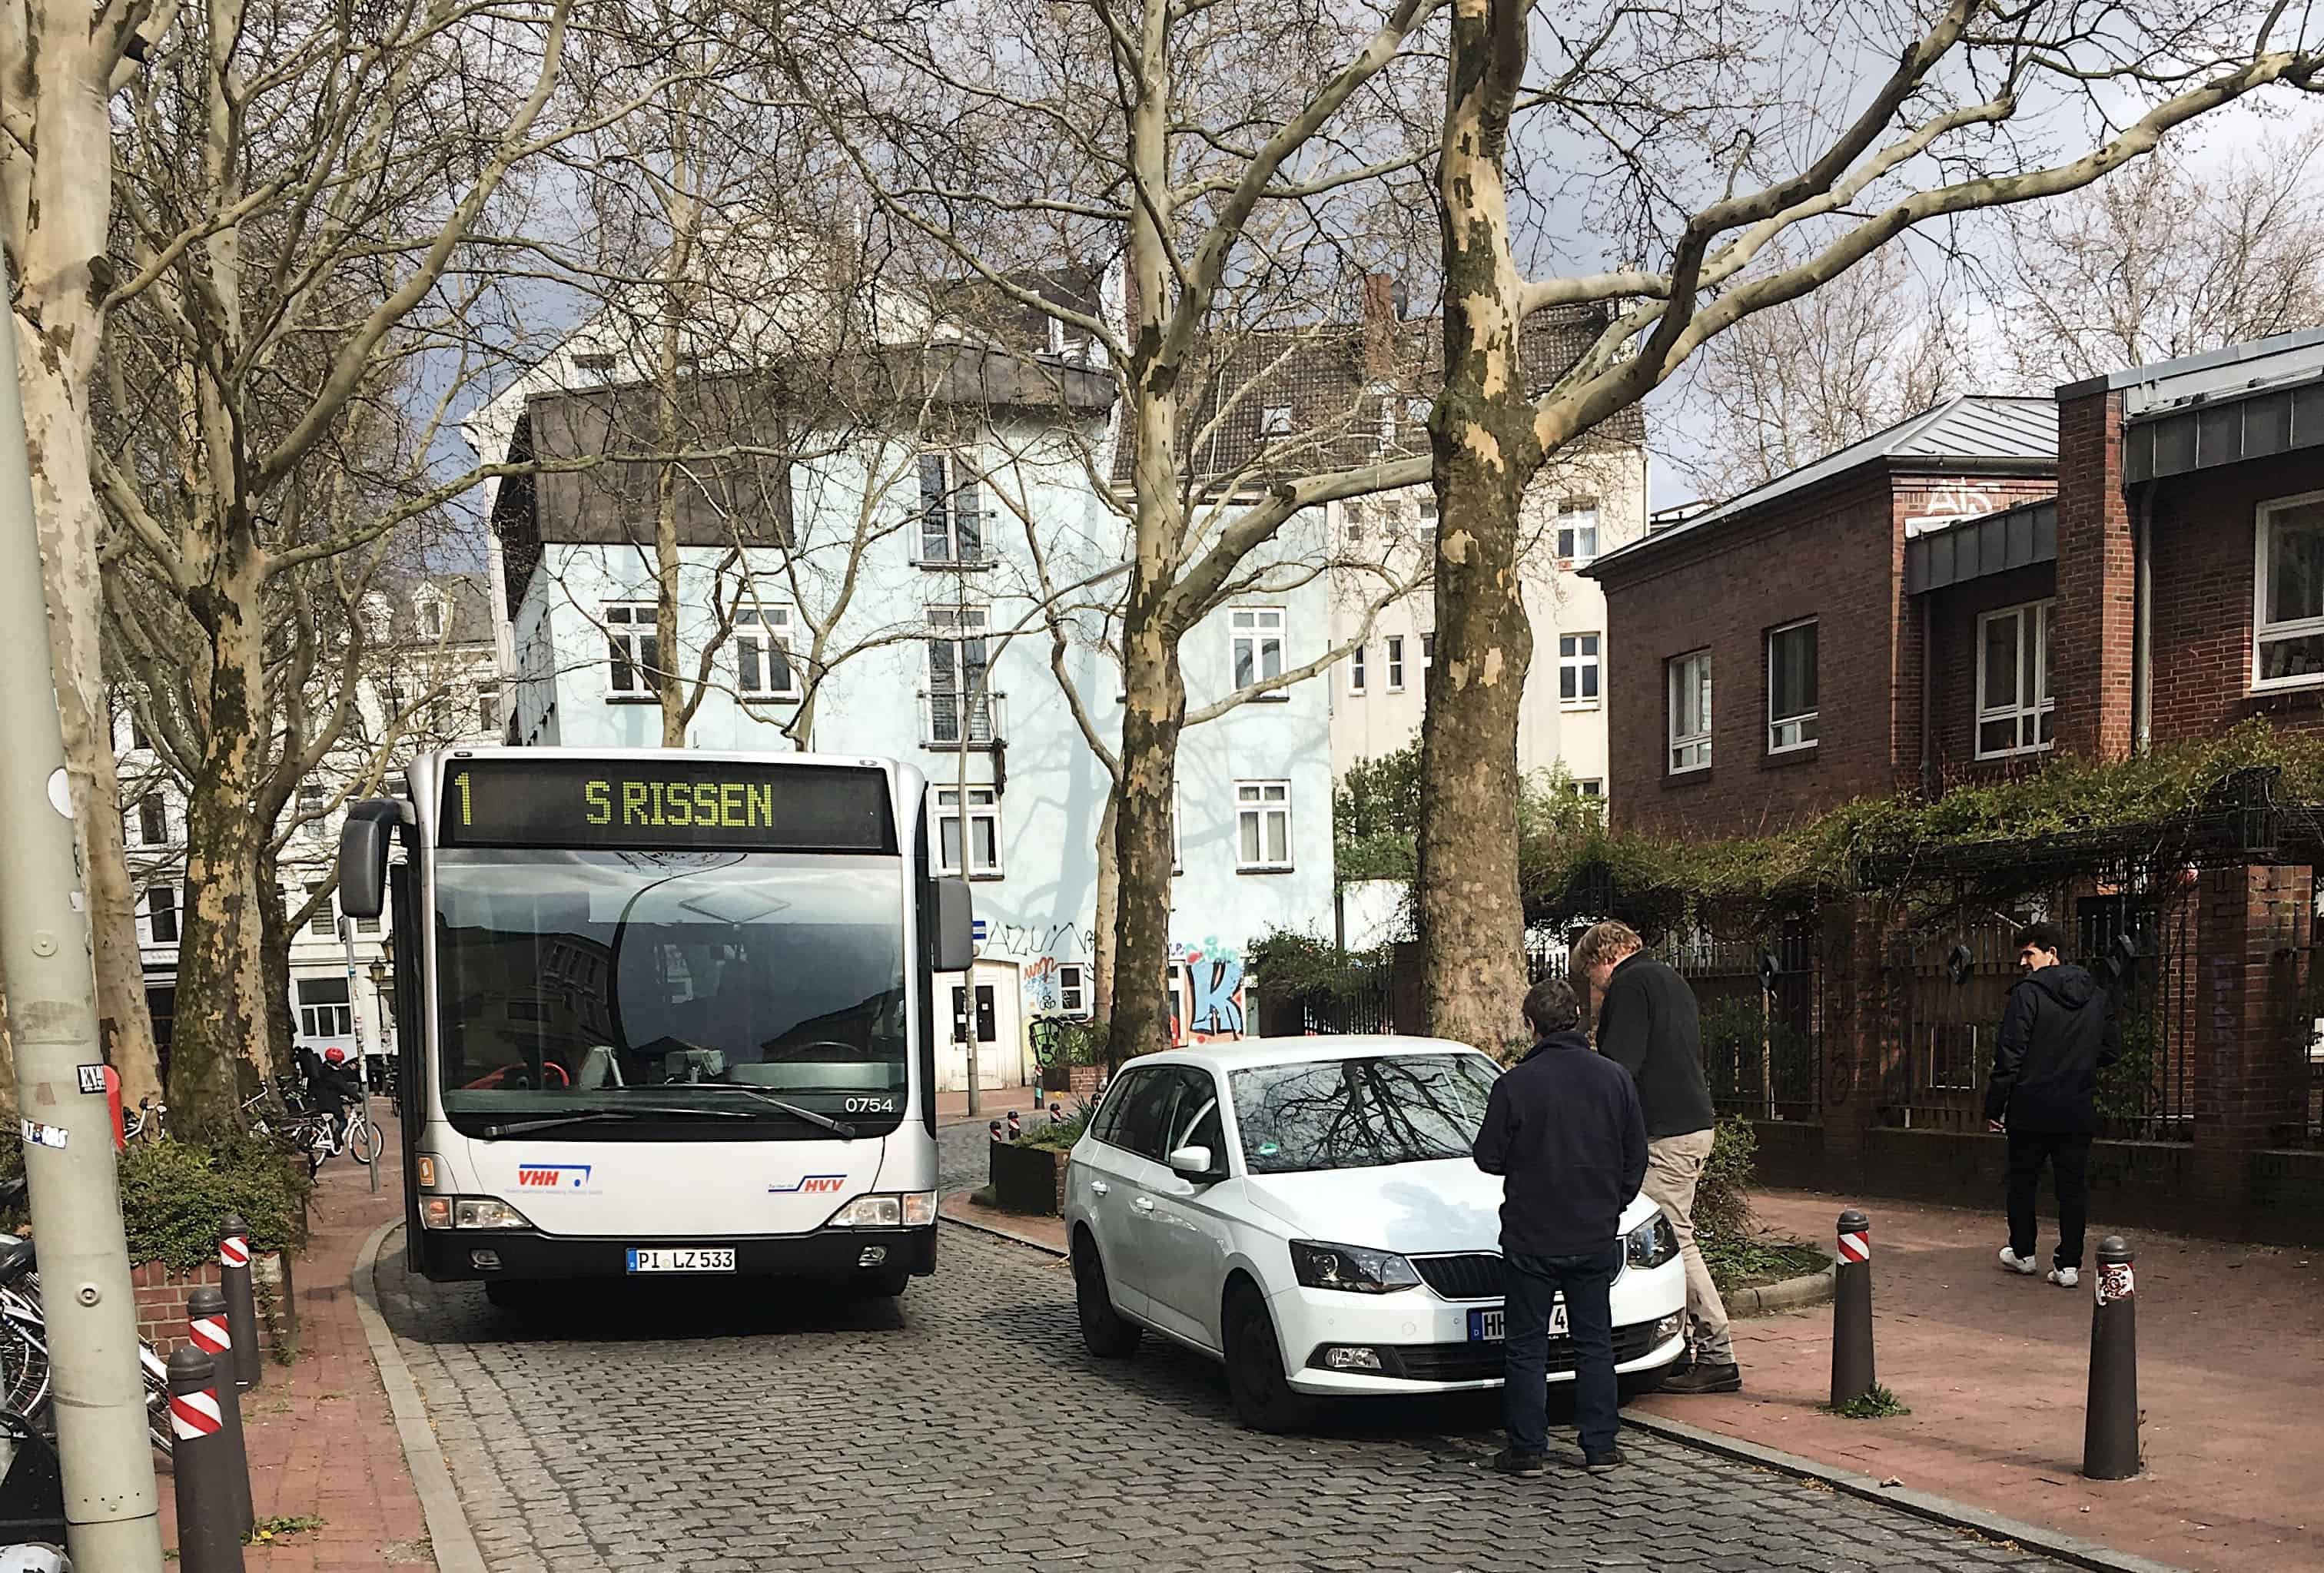 A bus is one of the ways to get around via public transportation in Hamburg, Germany